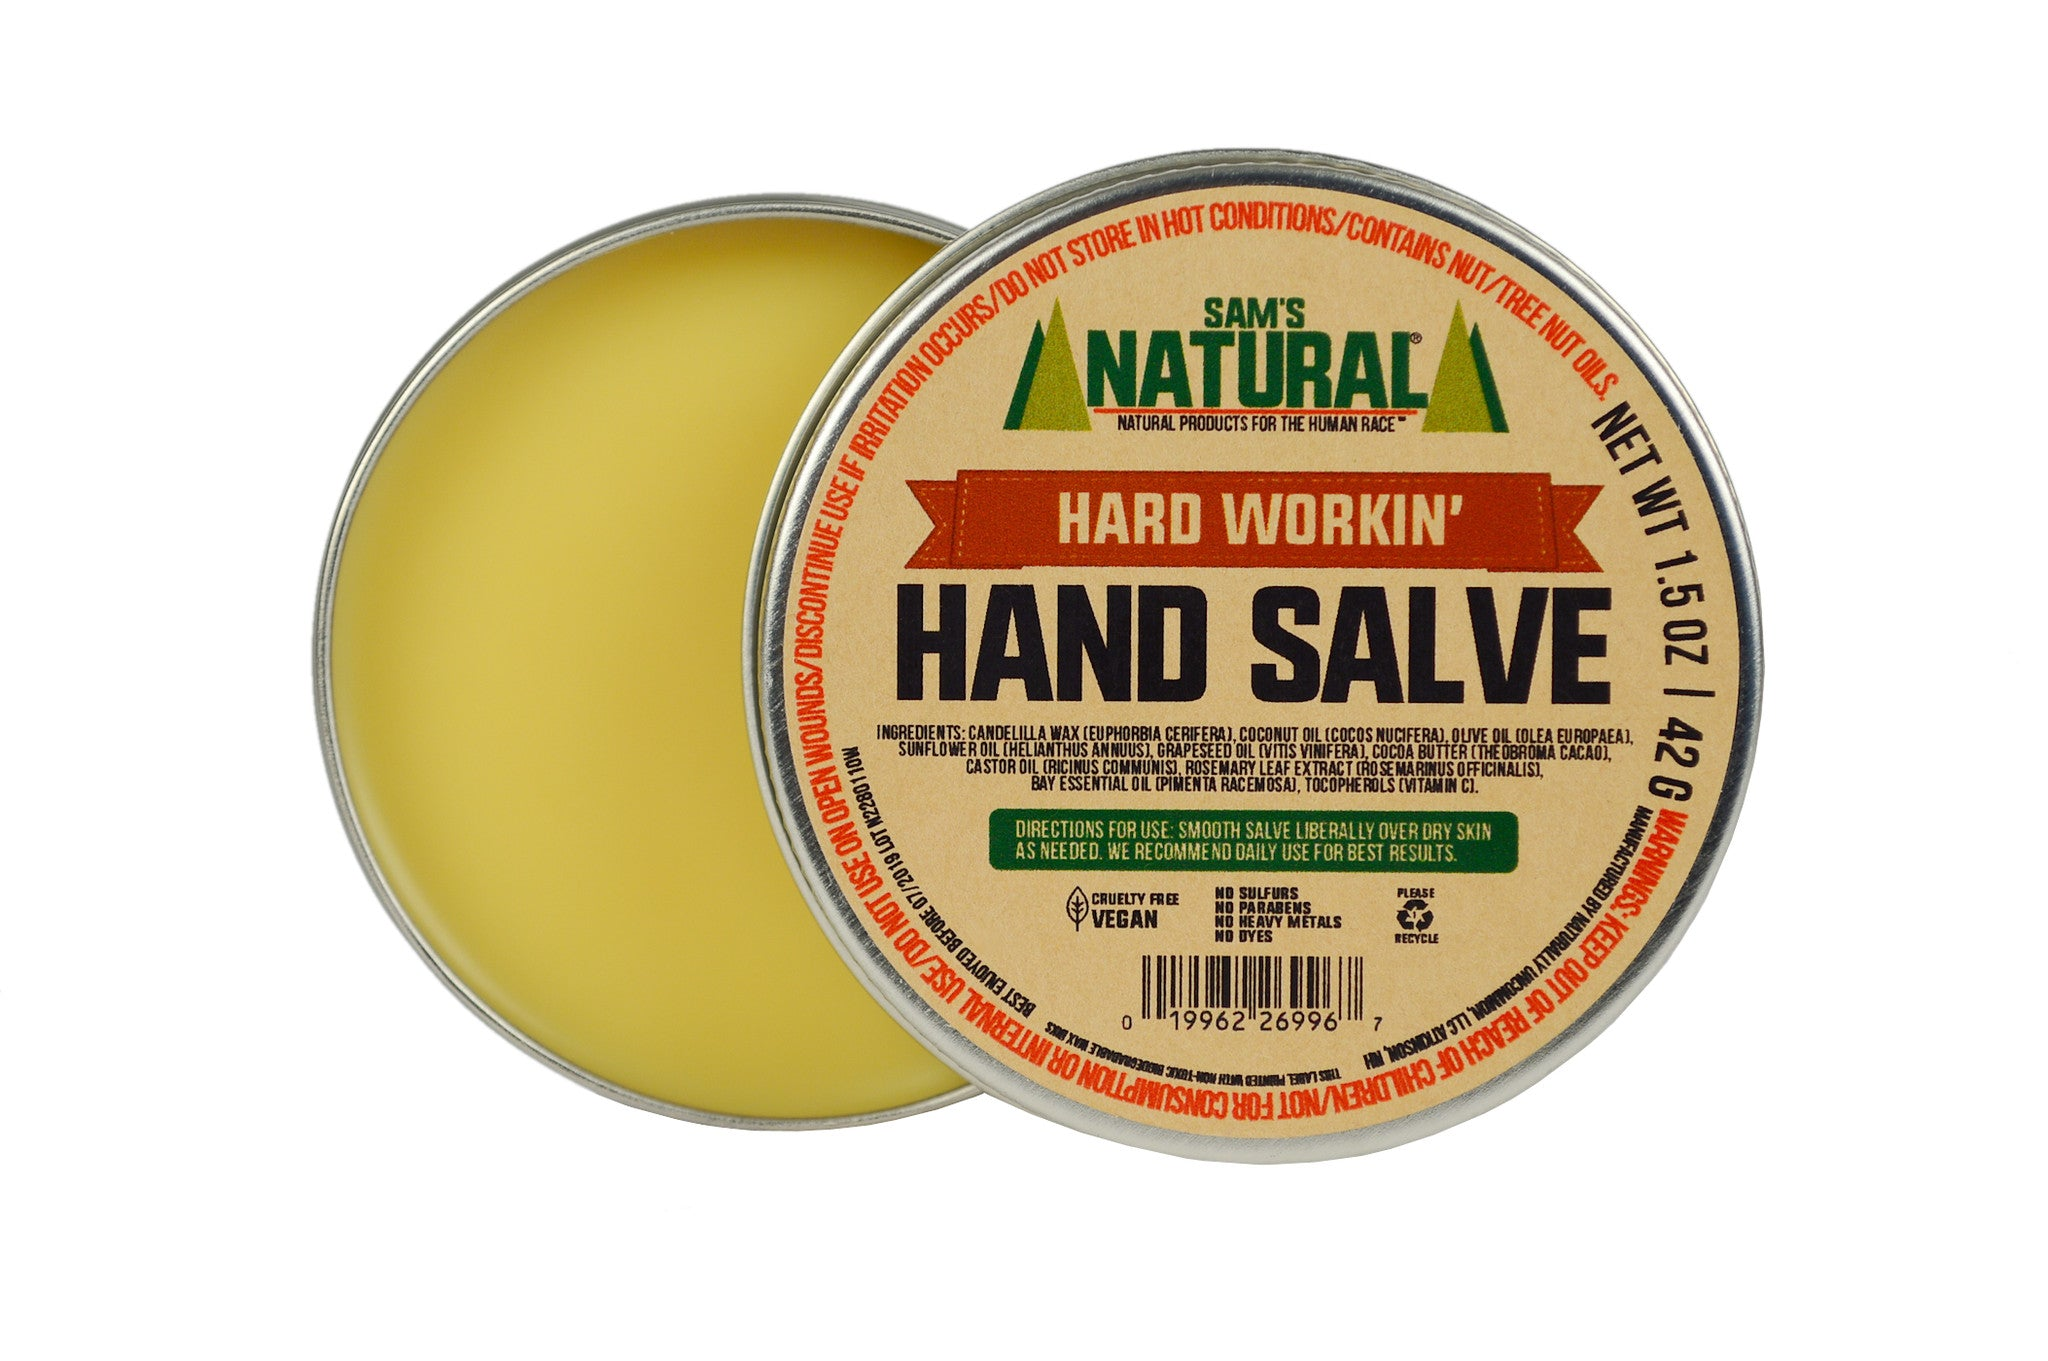 Hard Workin' Hand Salve - Sams Natural (6)